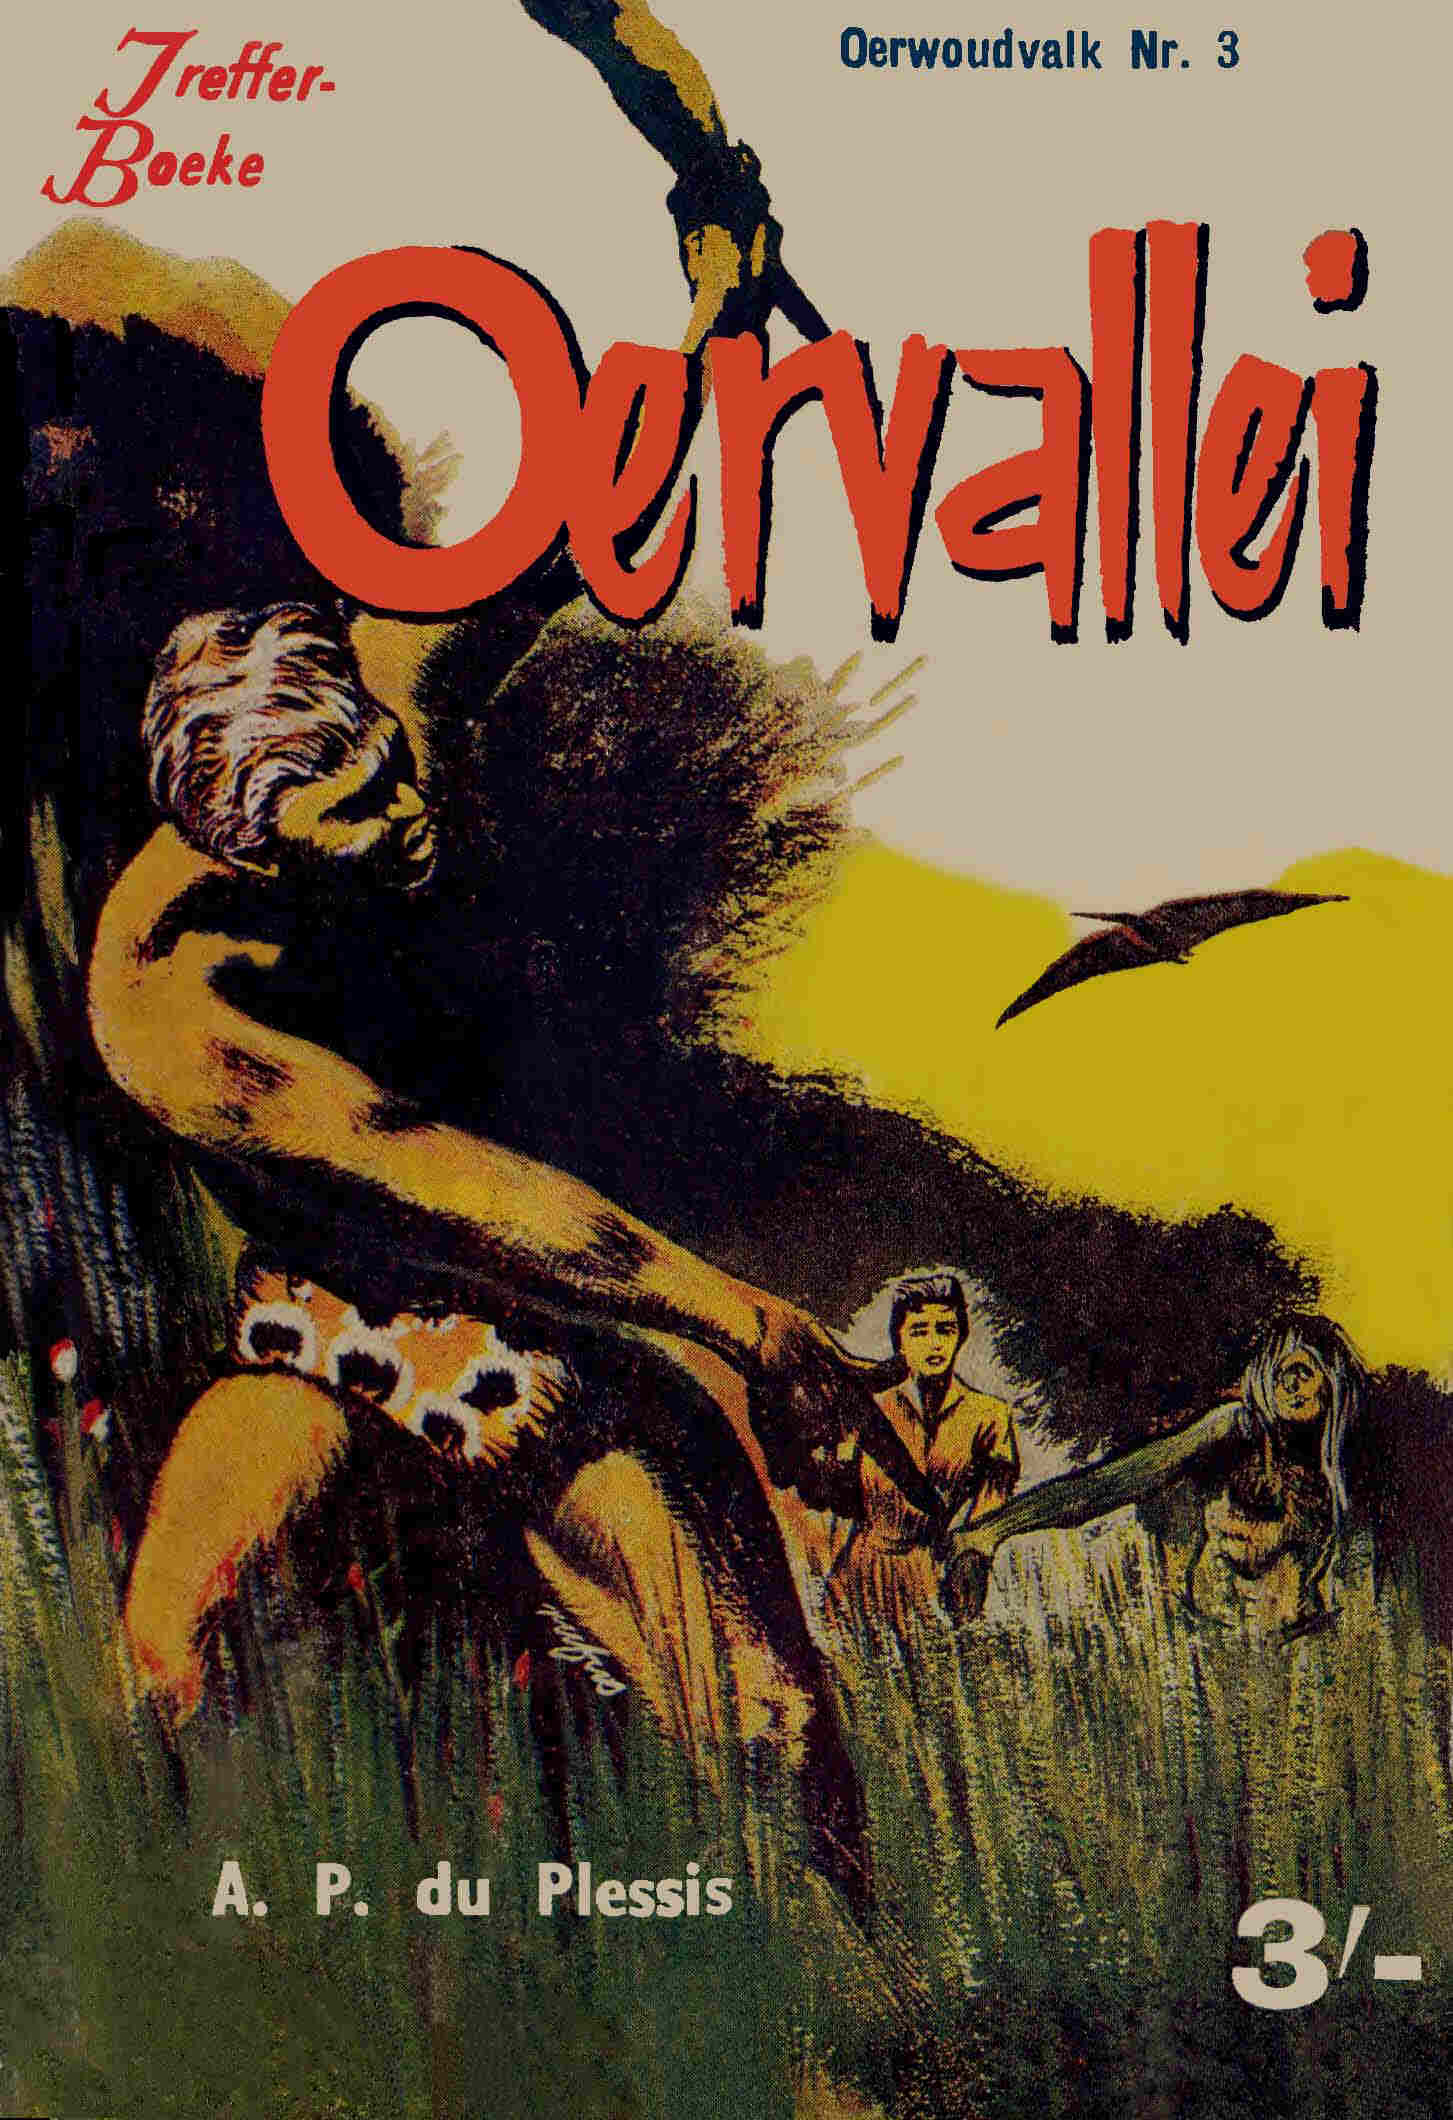 3. Oervallei - A. P. du Plessis (1959)